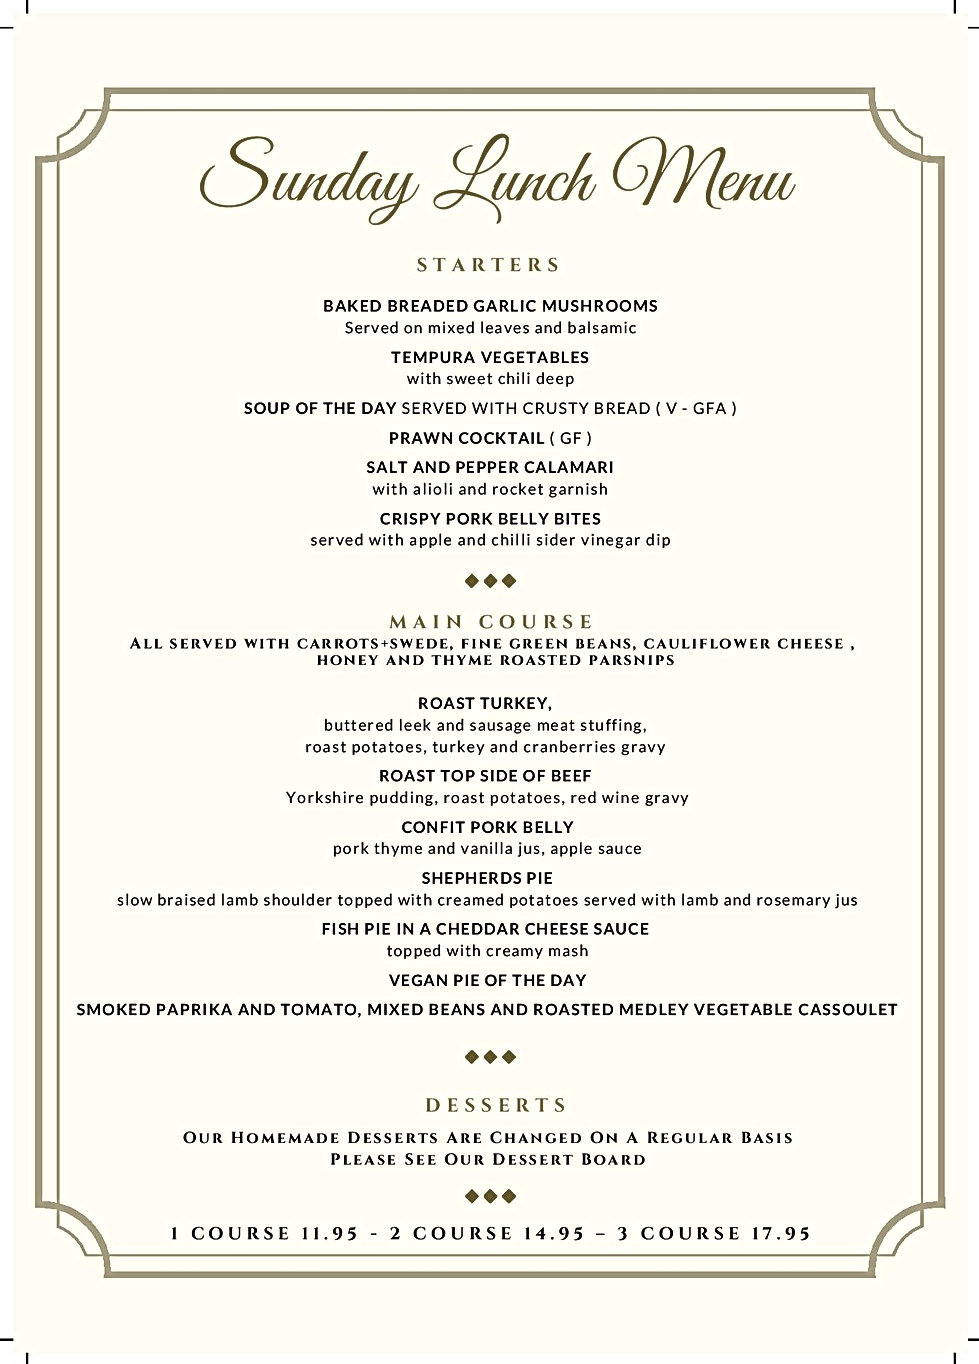 Sunday Lunch Menu done-page-001.jpg